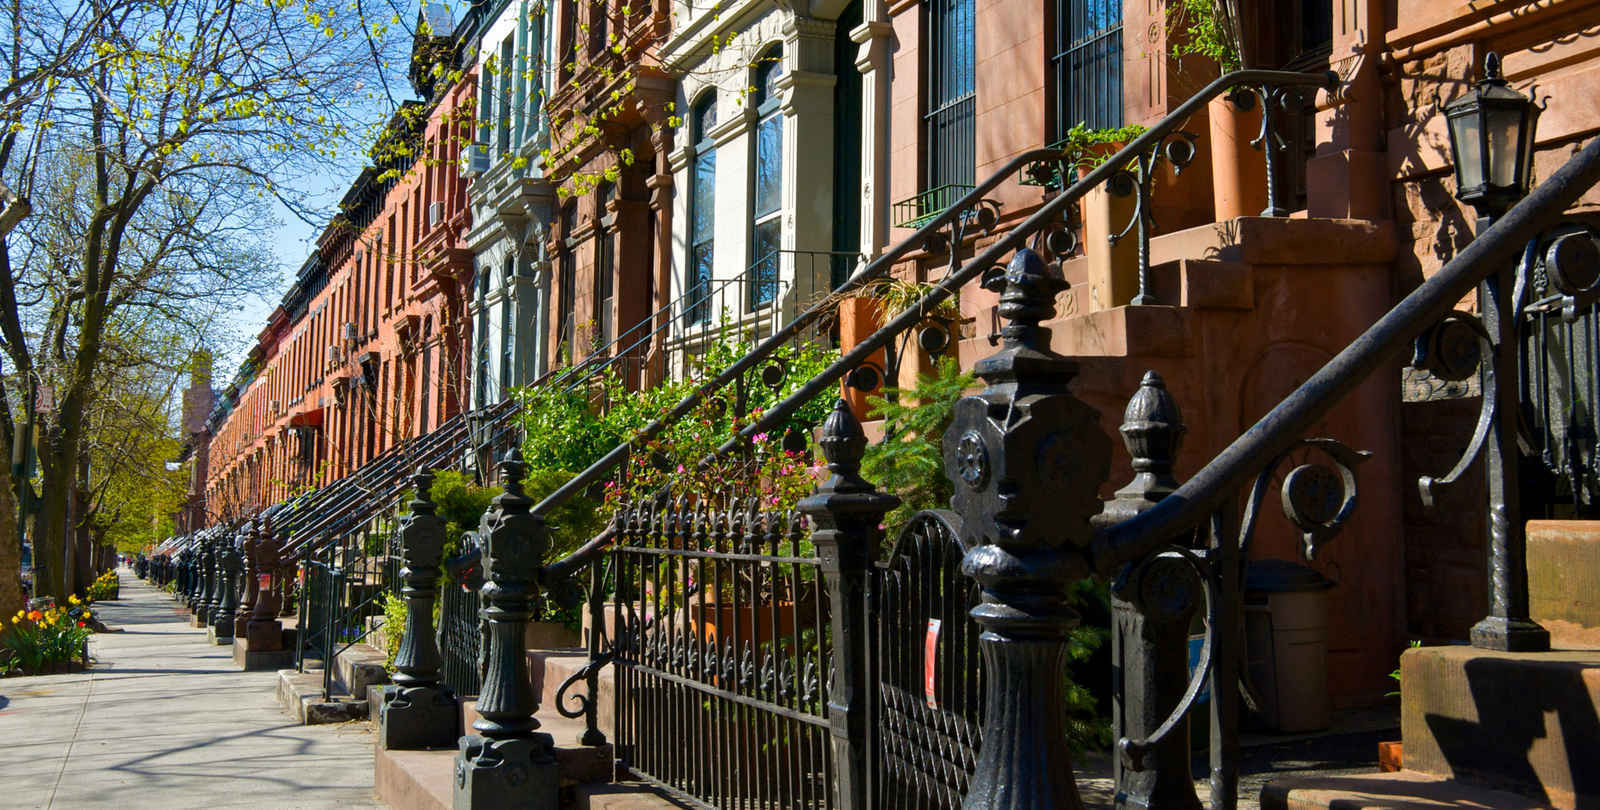 Row houses on tree-lined street in Park Slope Brooklyn